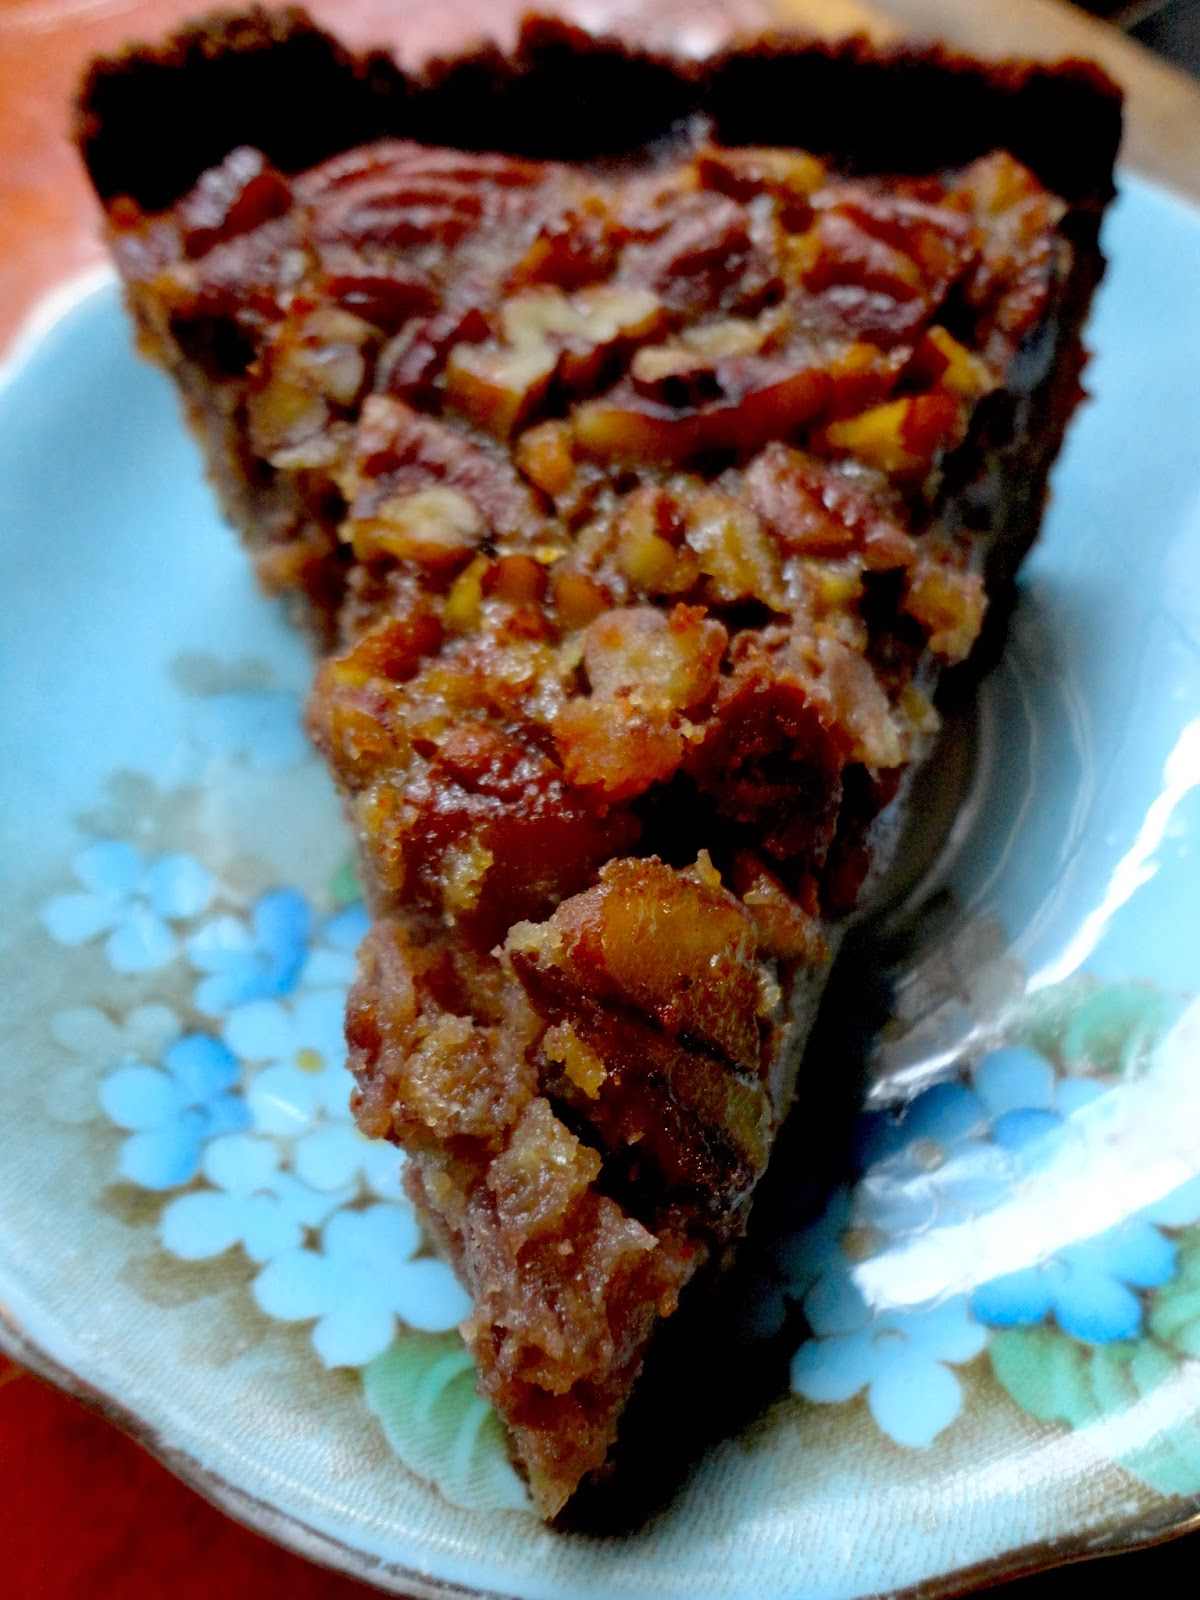 Paleo Pecan Pie For The Soul | Rising Moon Nutrition